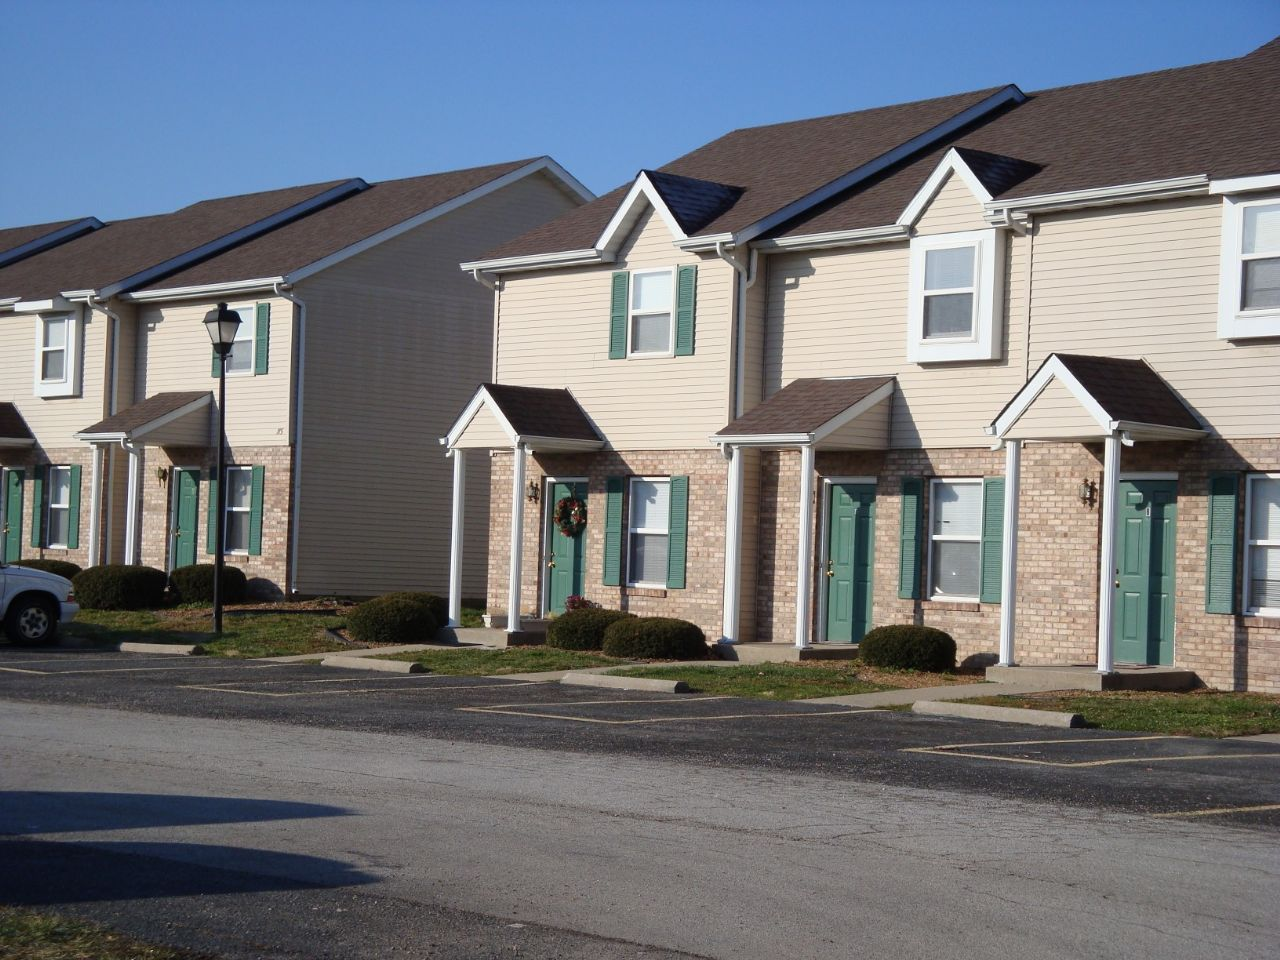 For Rent Housing And Apartment Rentals In Collinsville Maryville Glen Carbon And O 39 Fallon Il